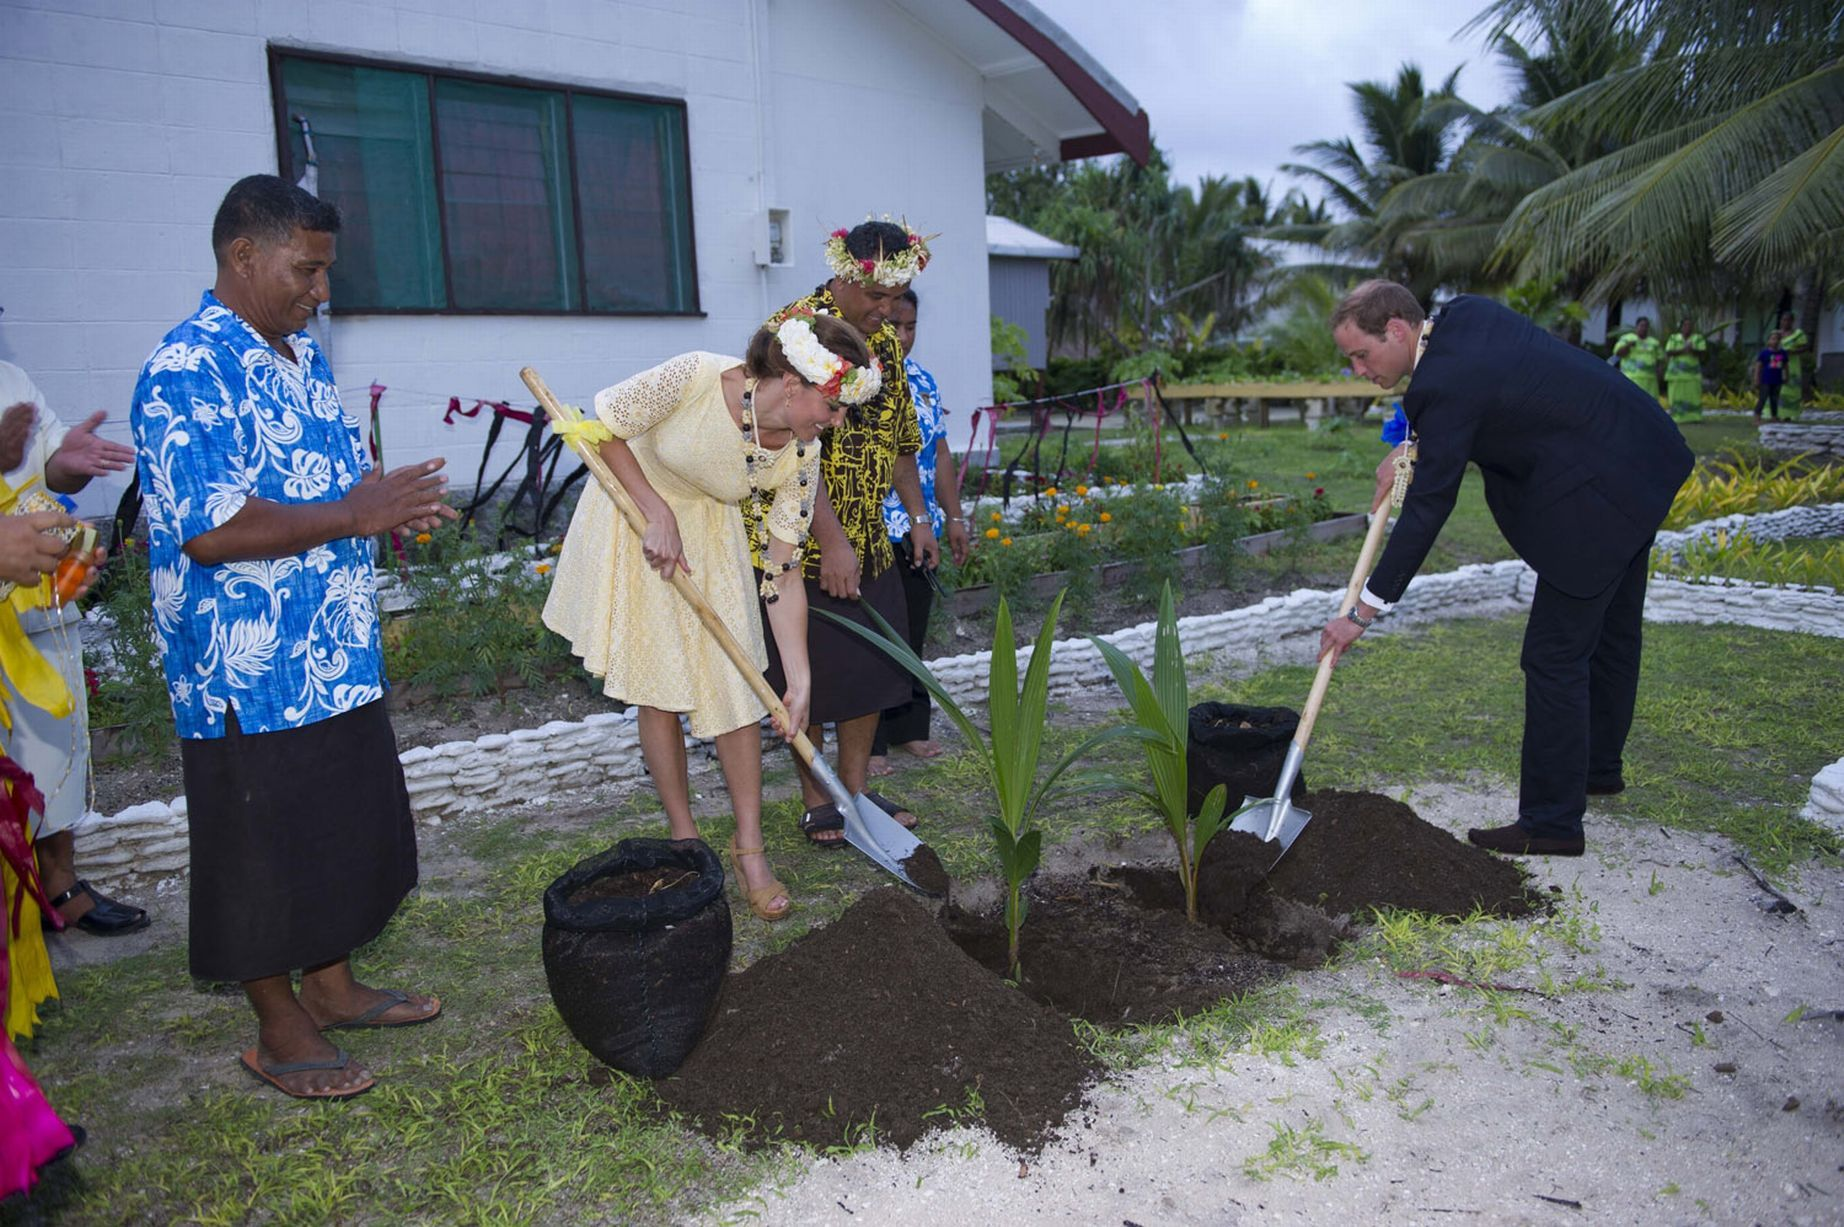 Prince William and Kate Middleton plant coconut trees during a visit to a Tuvalu village